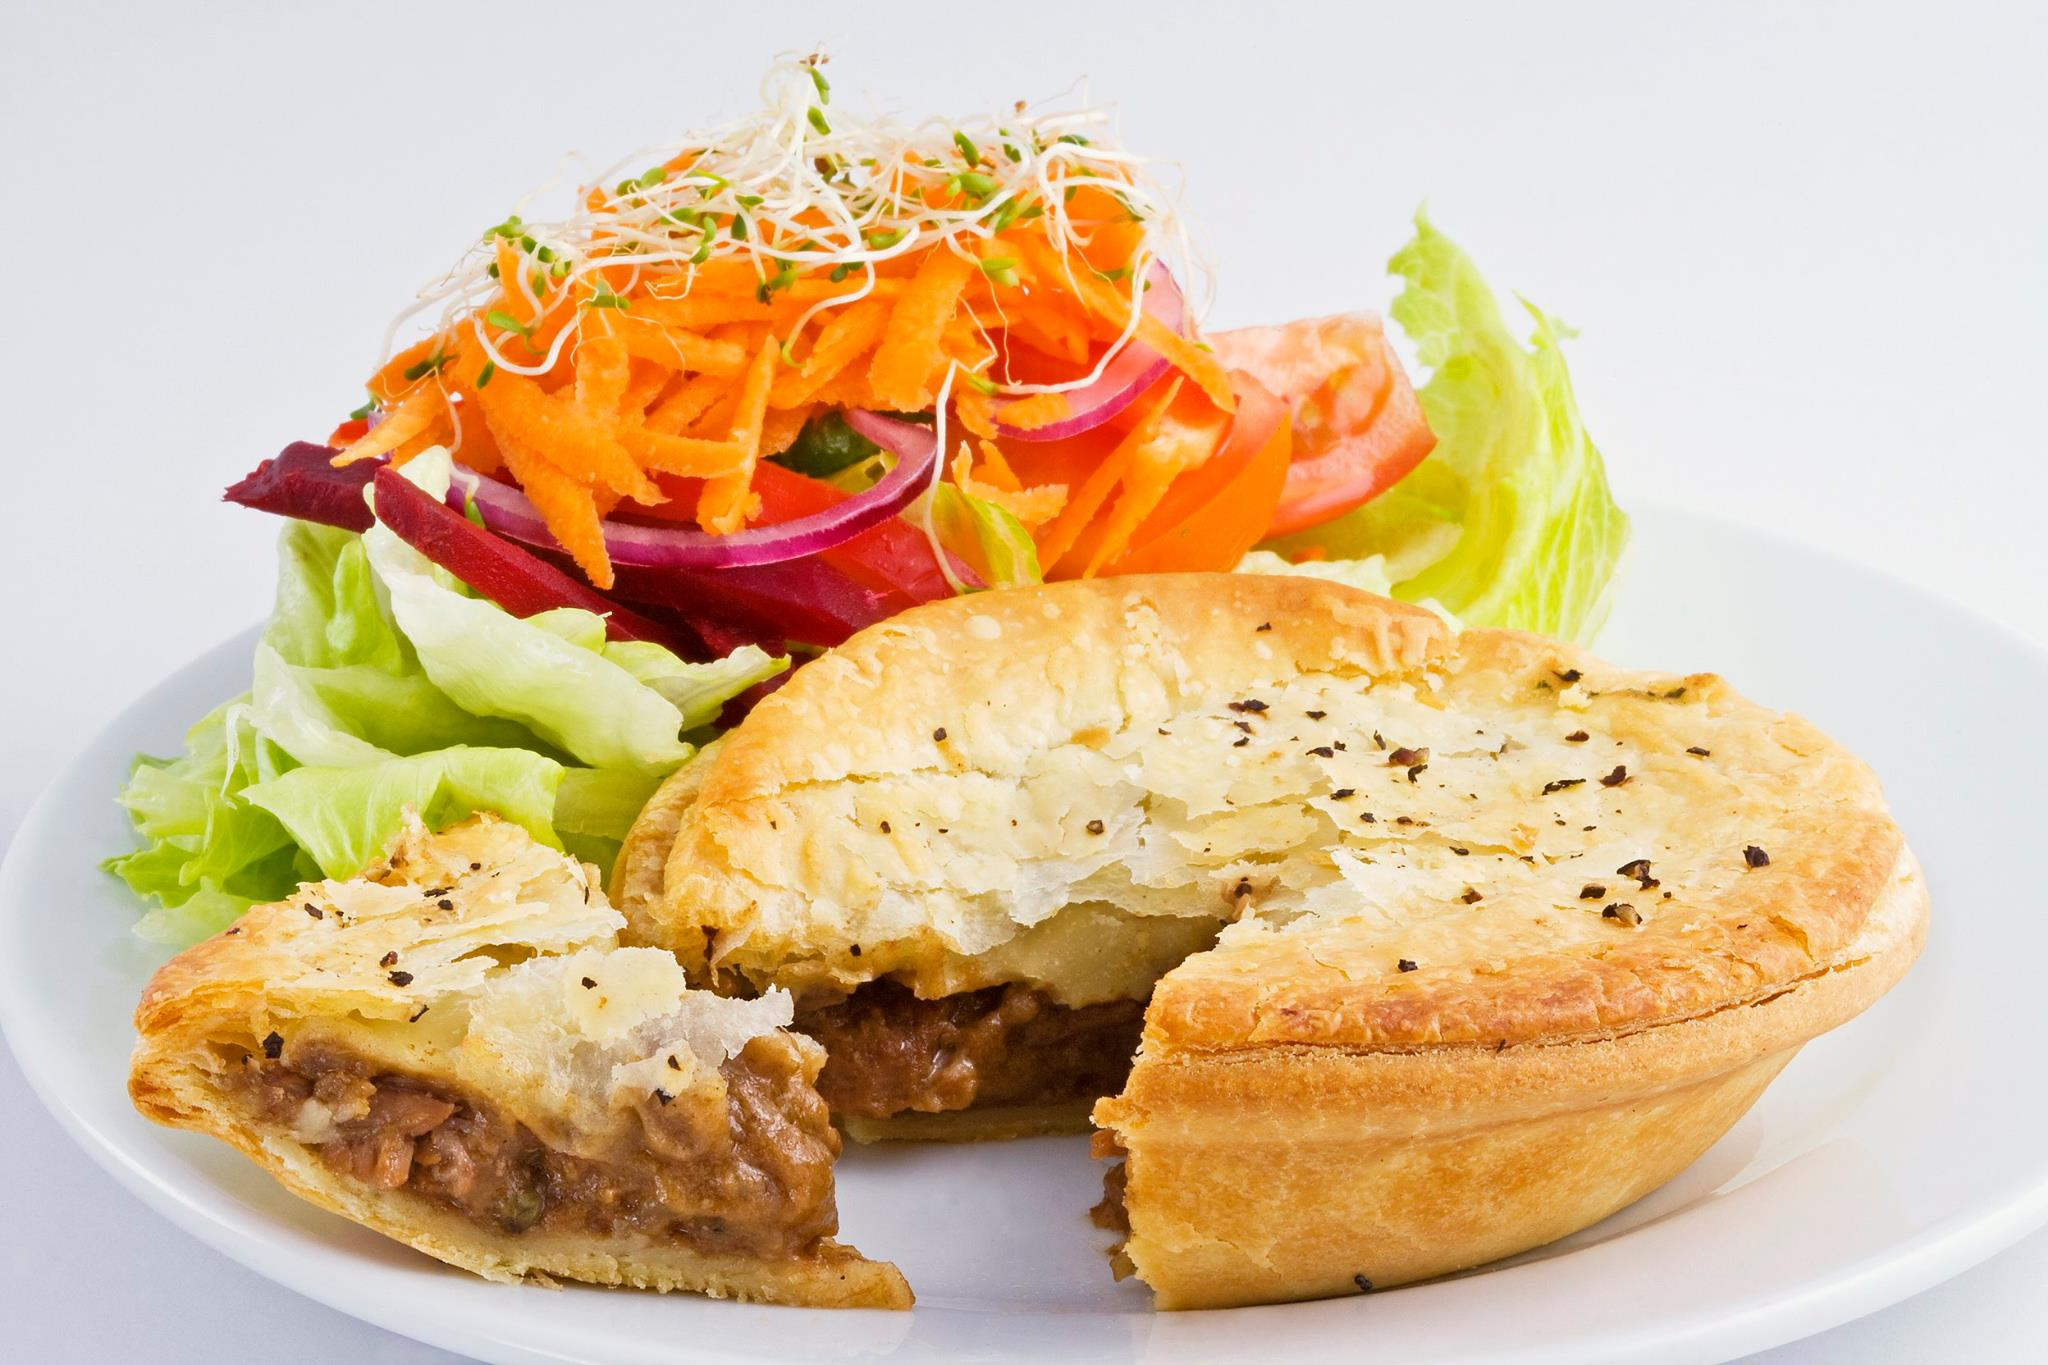 Pie and salad at The Courtyard Cafe Mogo